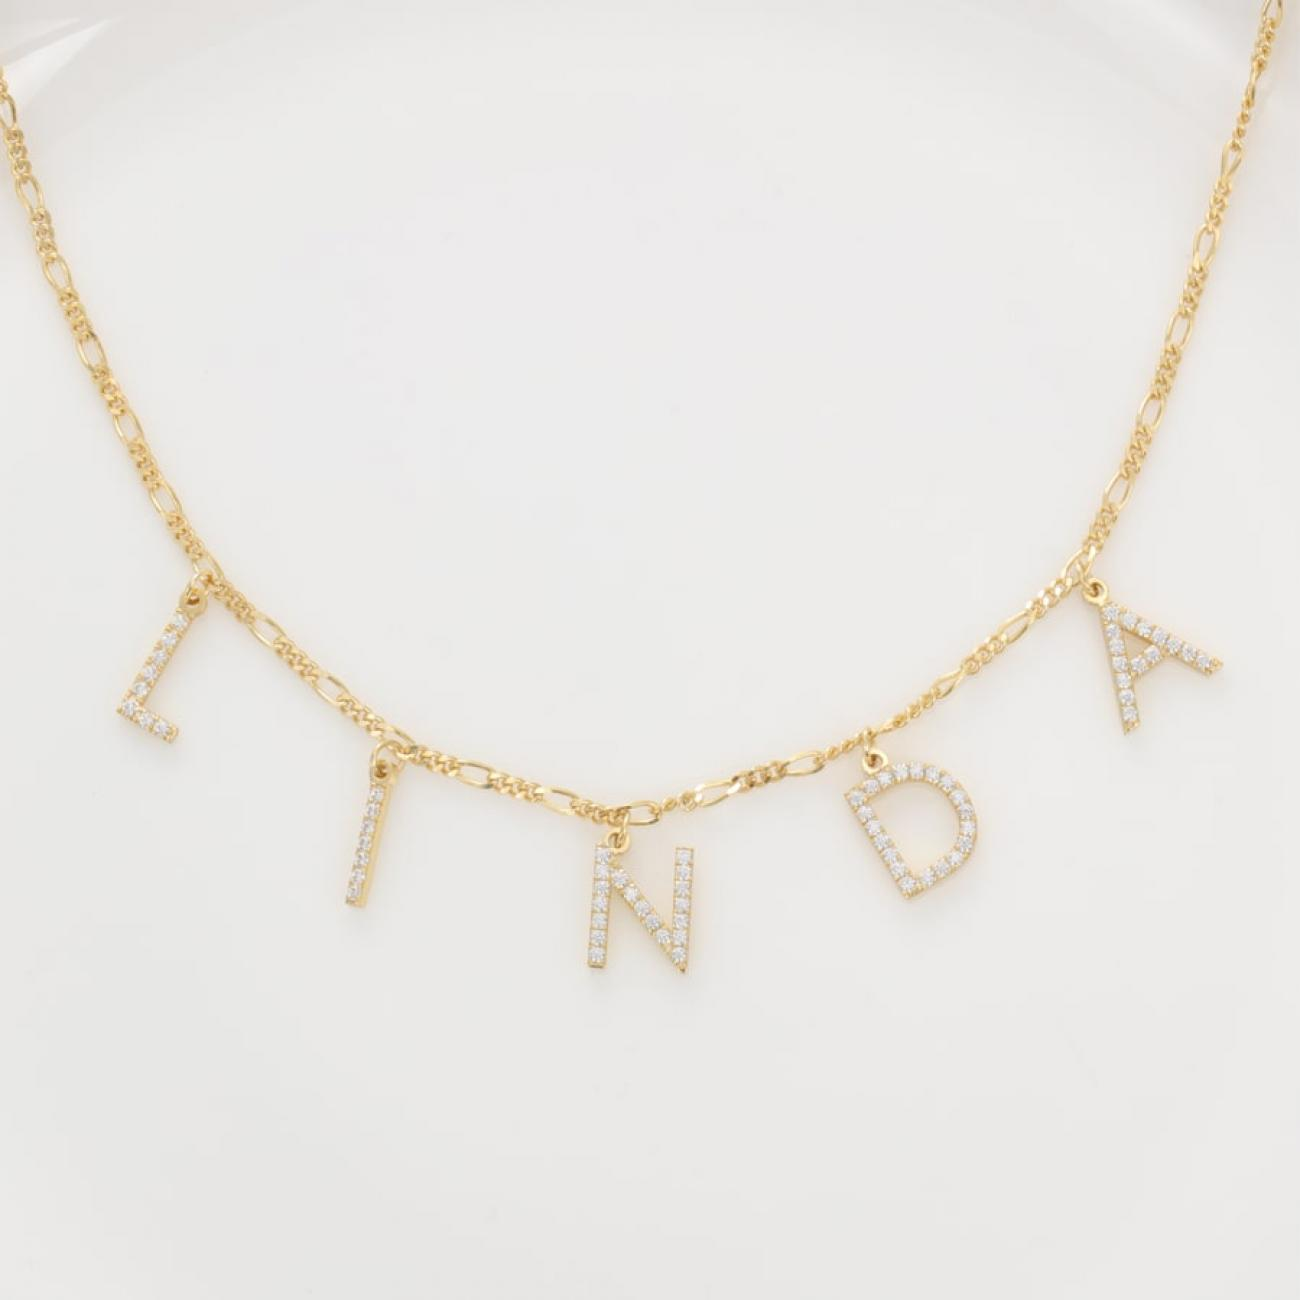 Letters name necklace Luxury 3.0